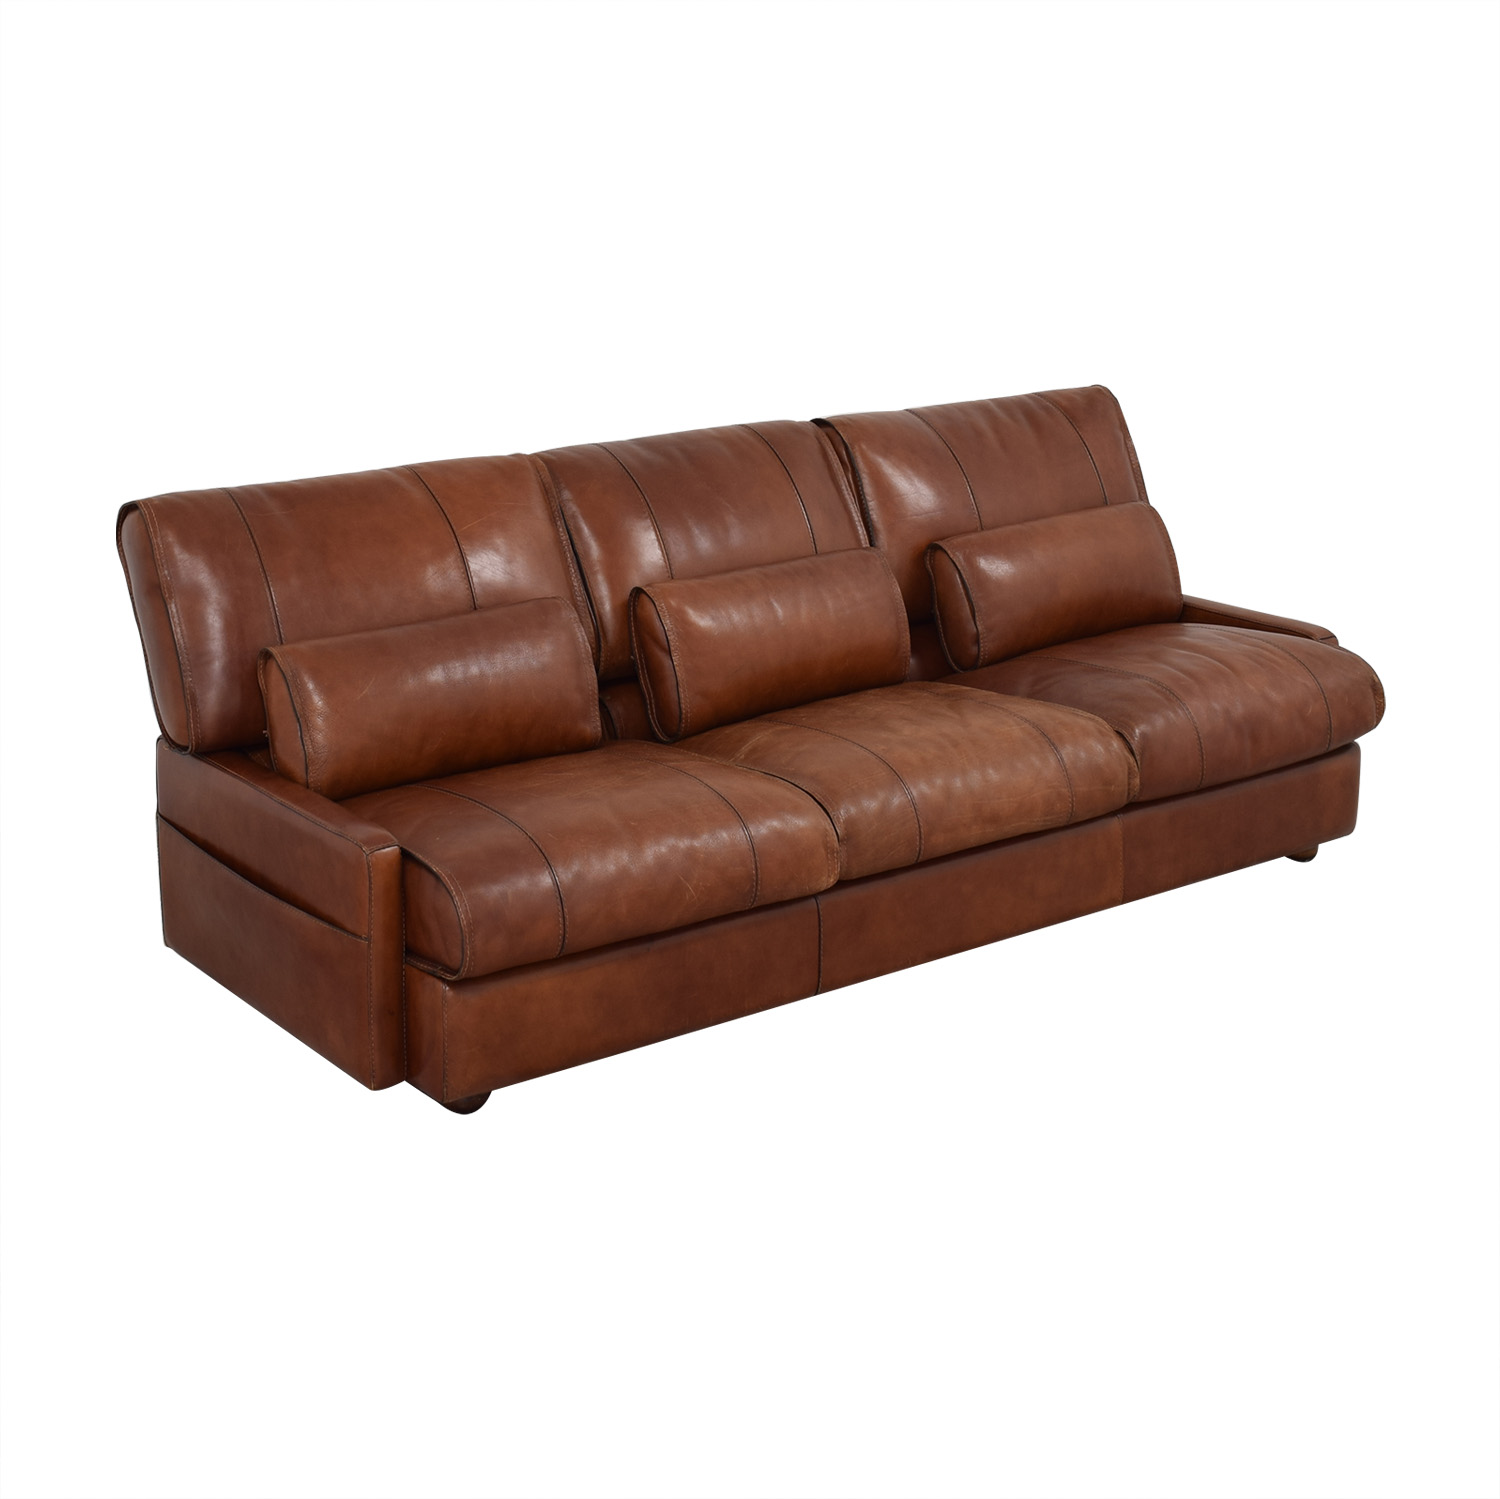 Modern Italian Leather Sofa sale